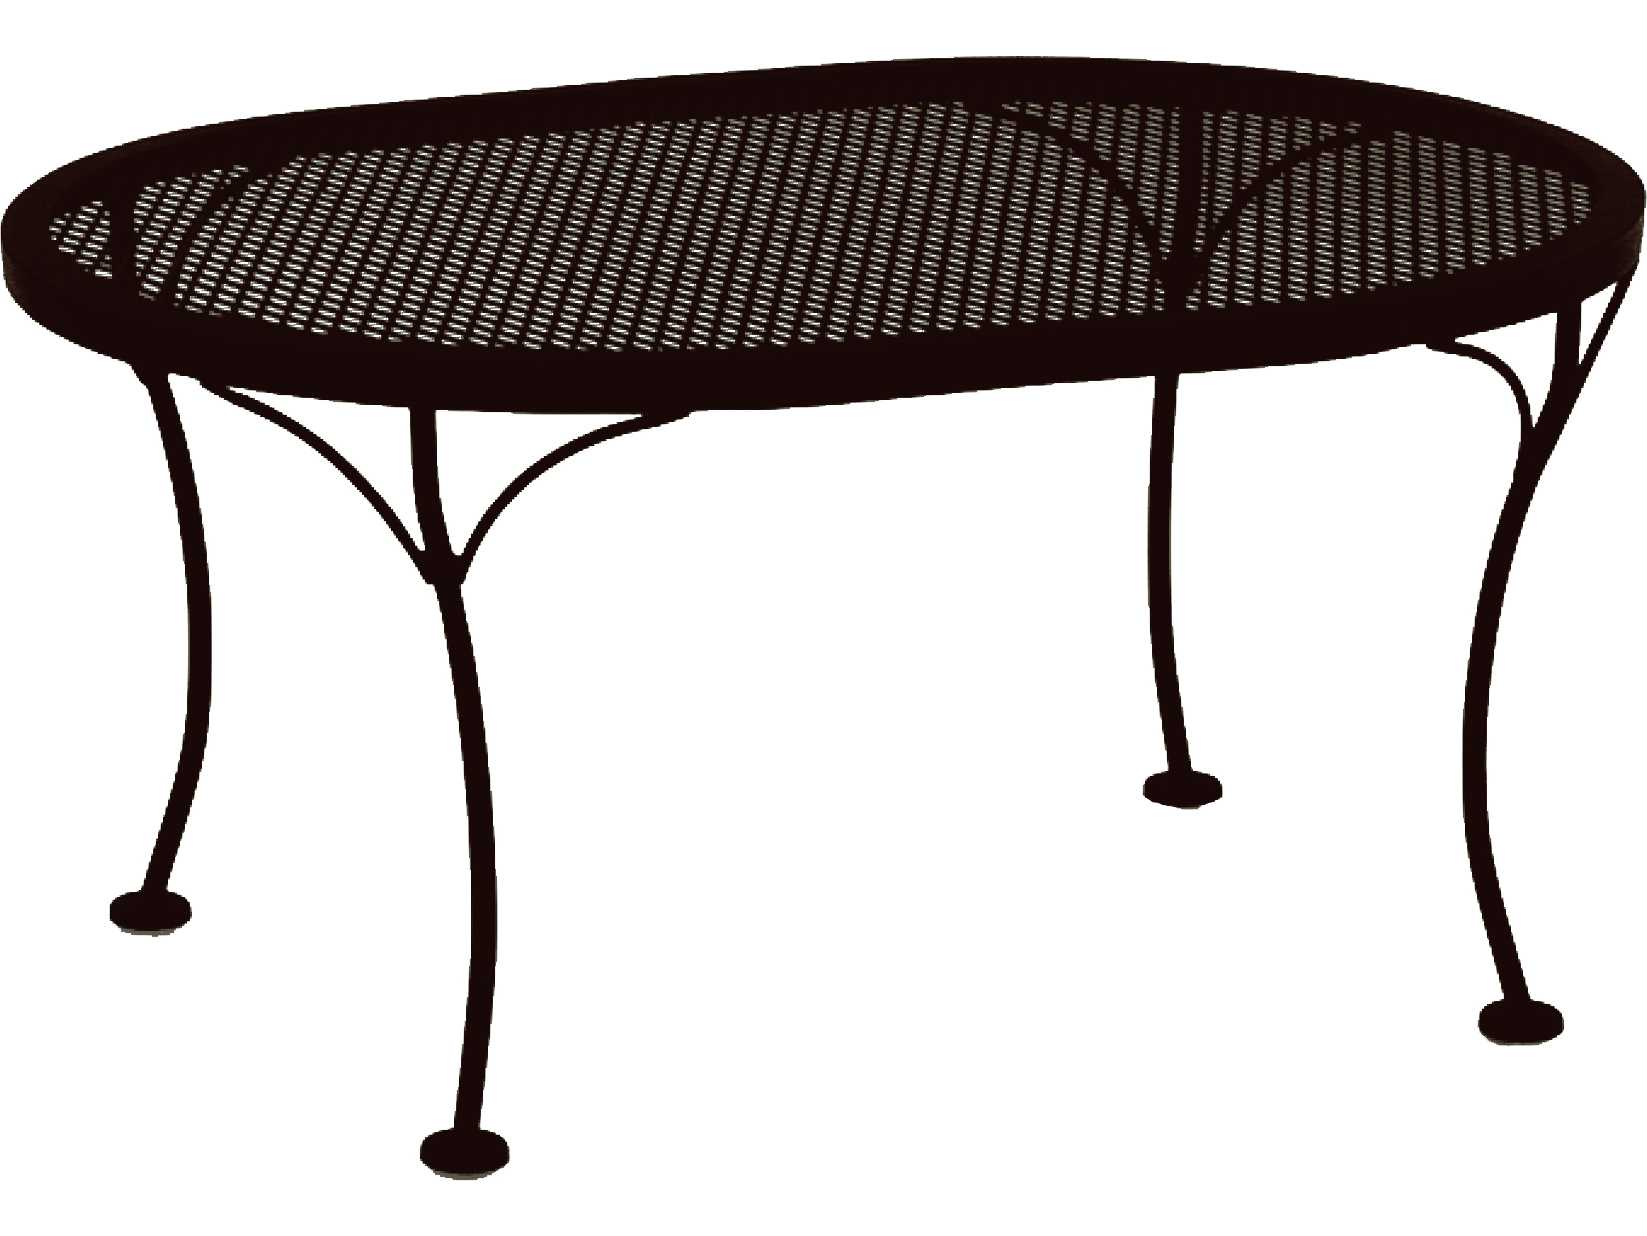 ow lee mesh wrought iron 34 x 24 oval coffee table ow2434ovmot. Black Bedroom Furniture Sets. Home Design Ideas